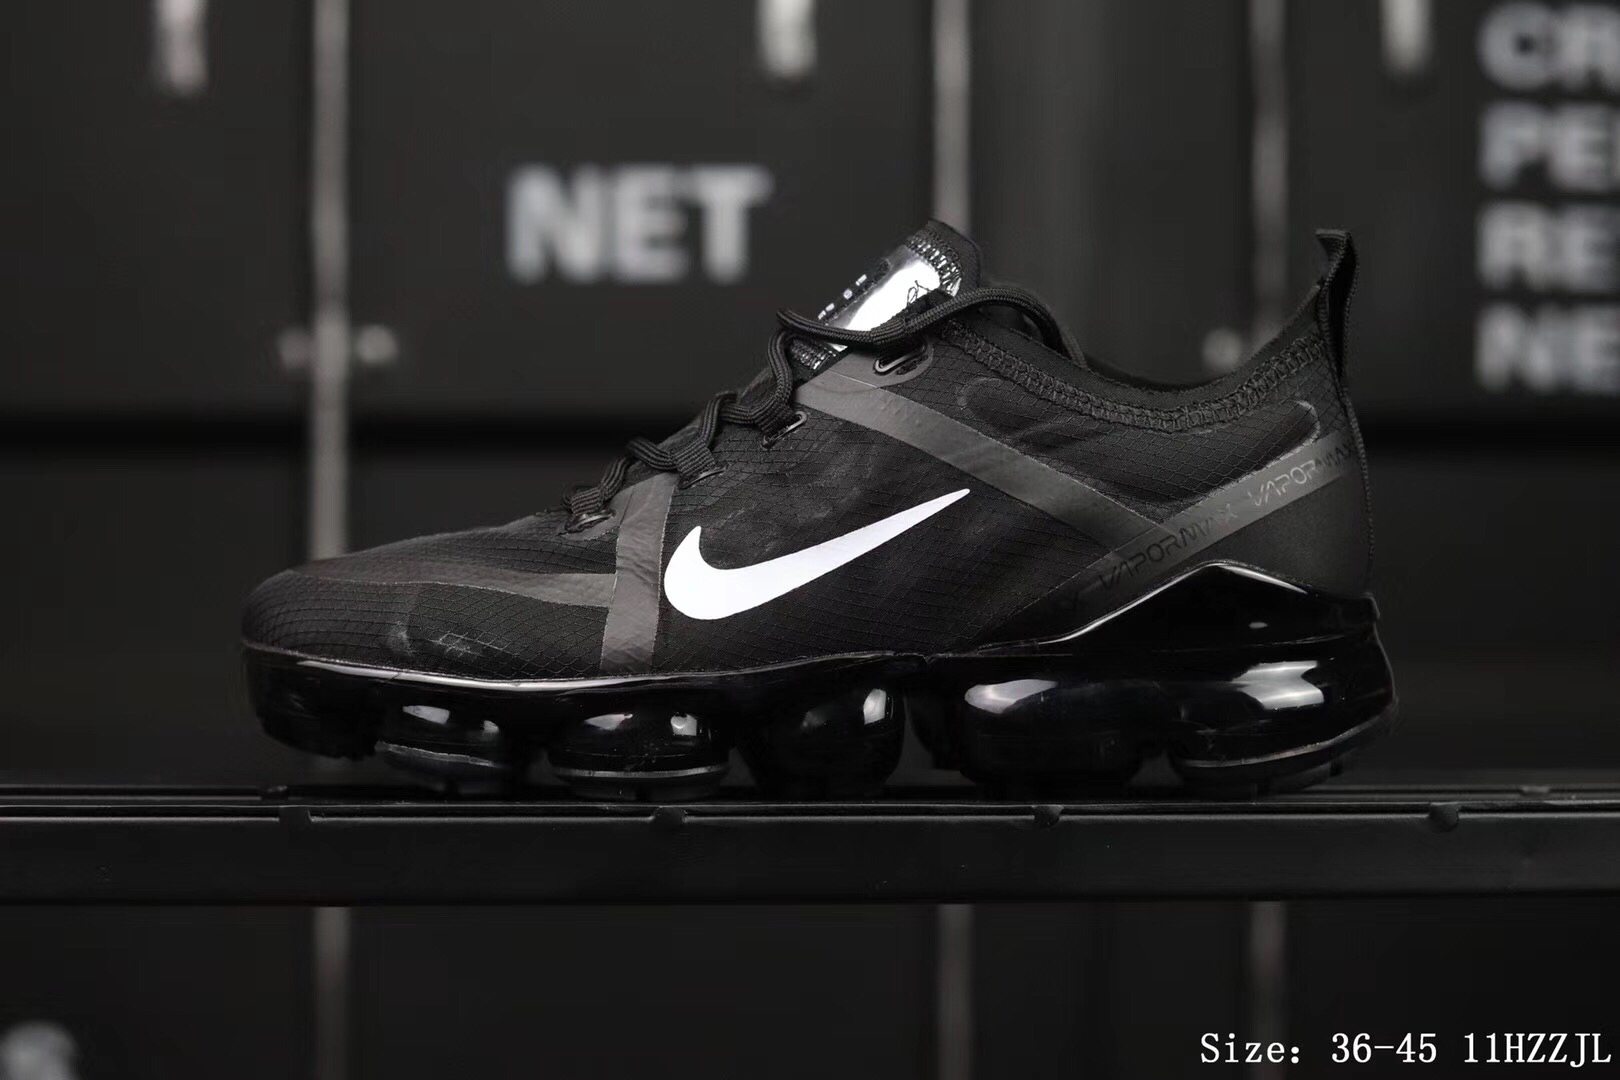 Women Nike Air Vapormax 2019 Flaps Black White Shoes